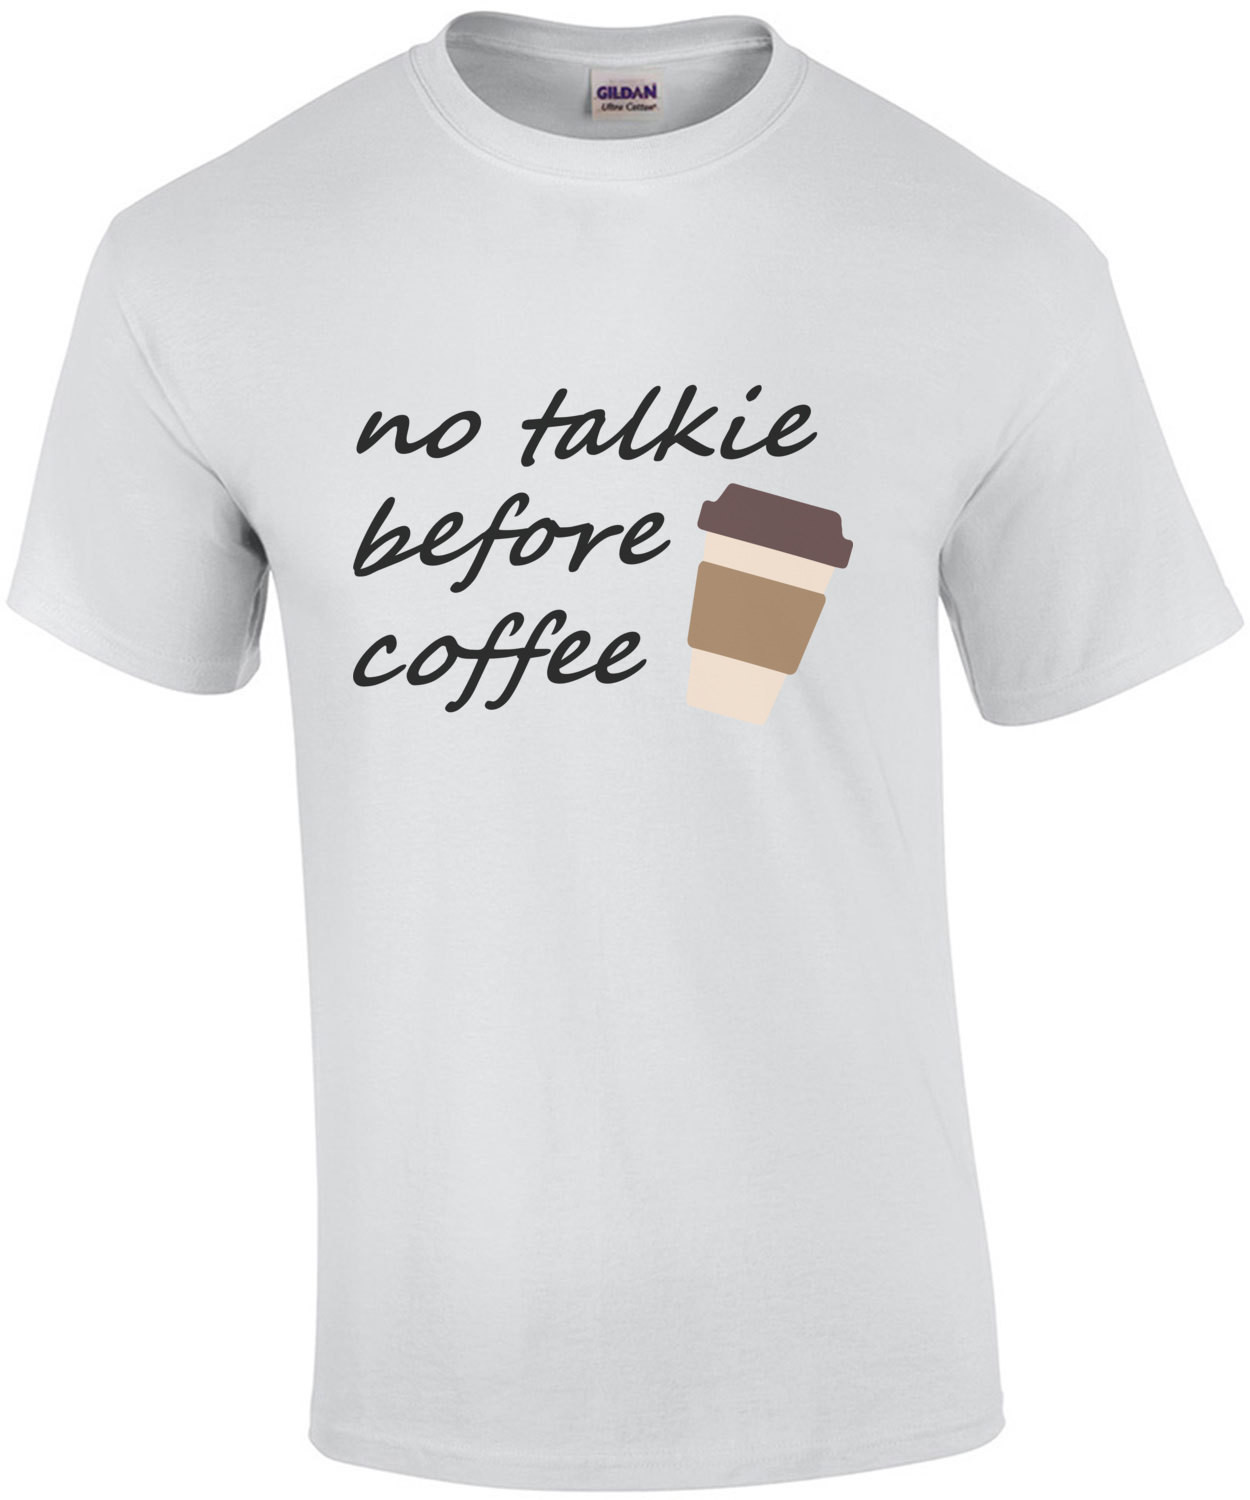 No talkie before coffee - funny coffee t-shirt